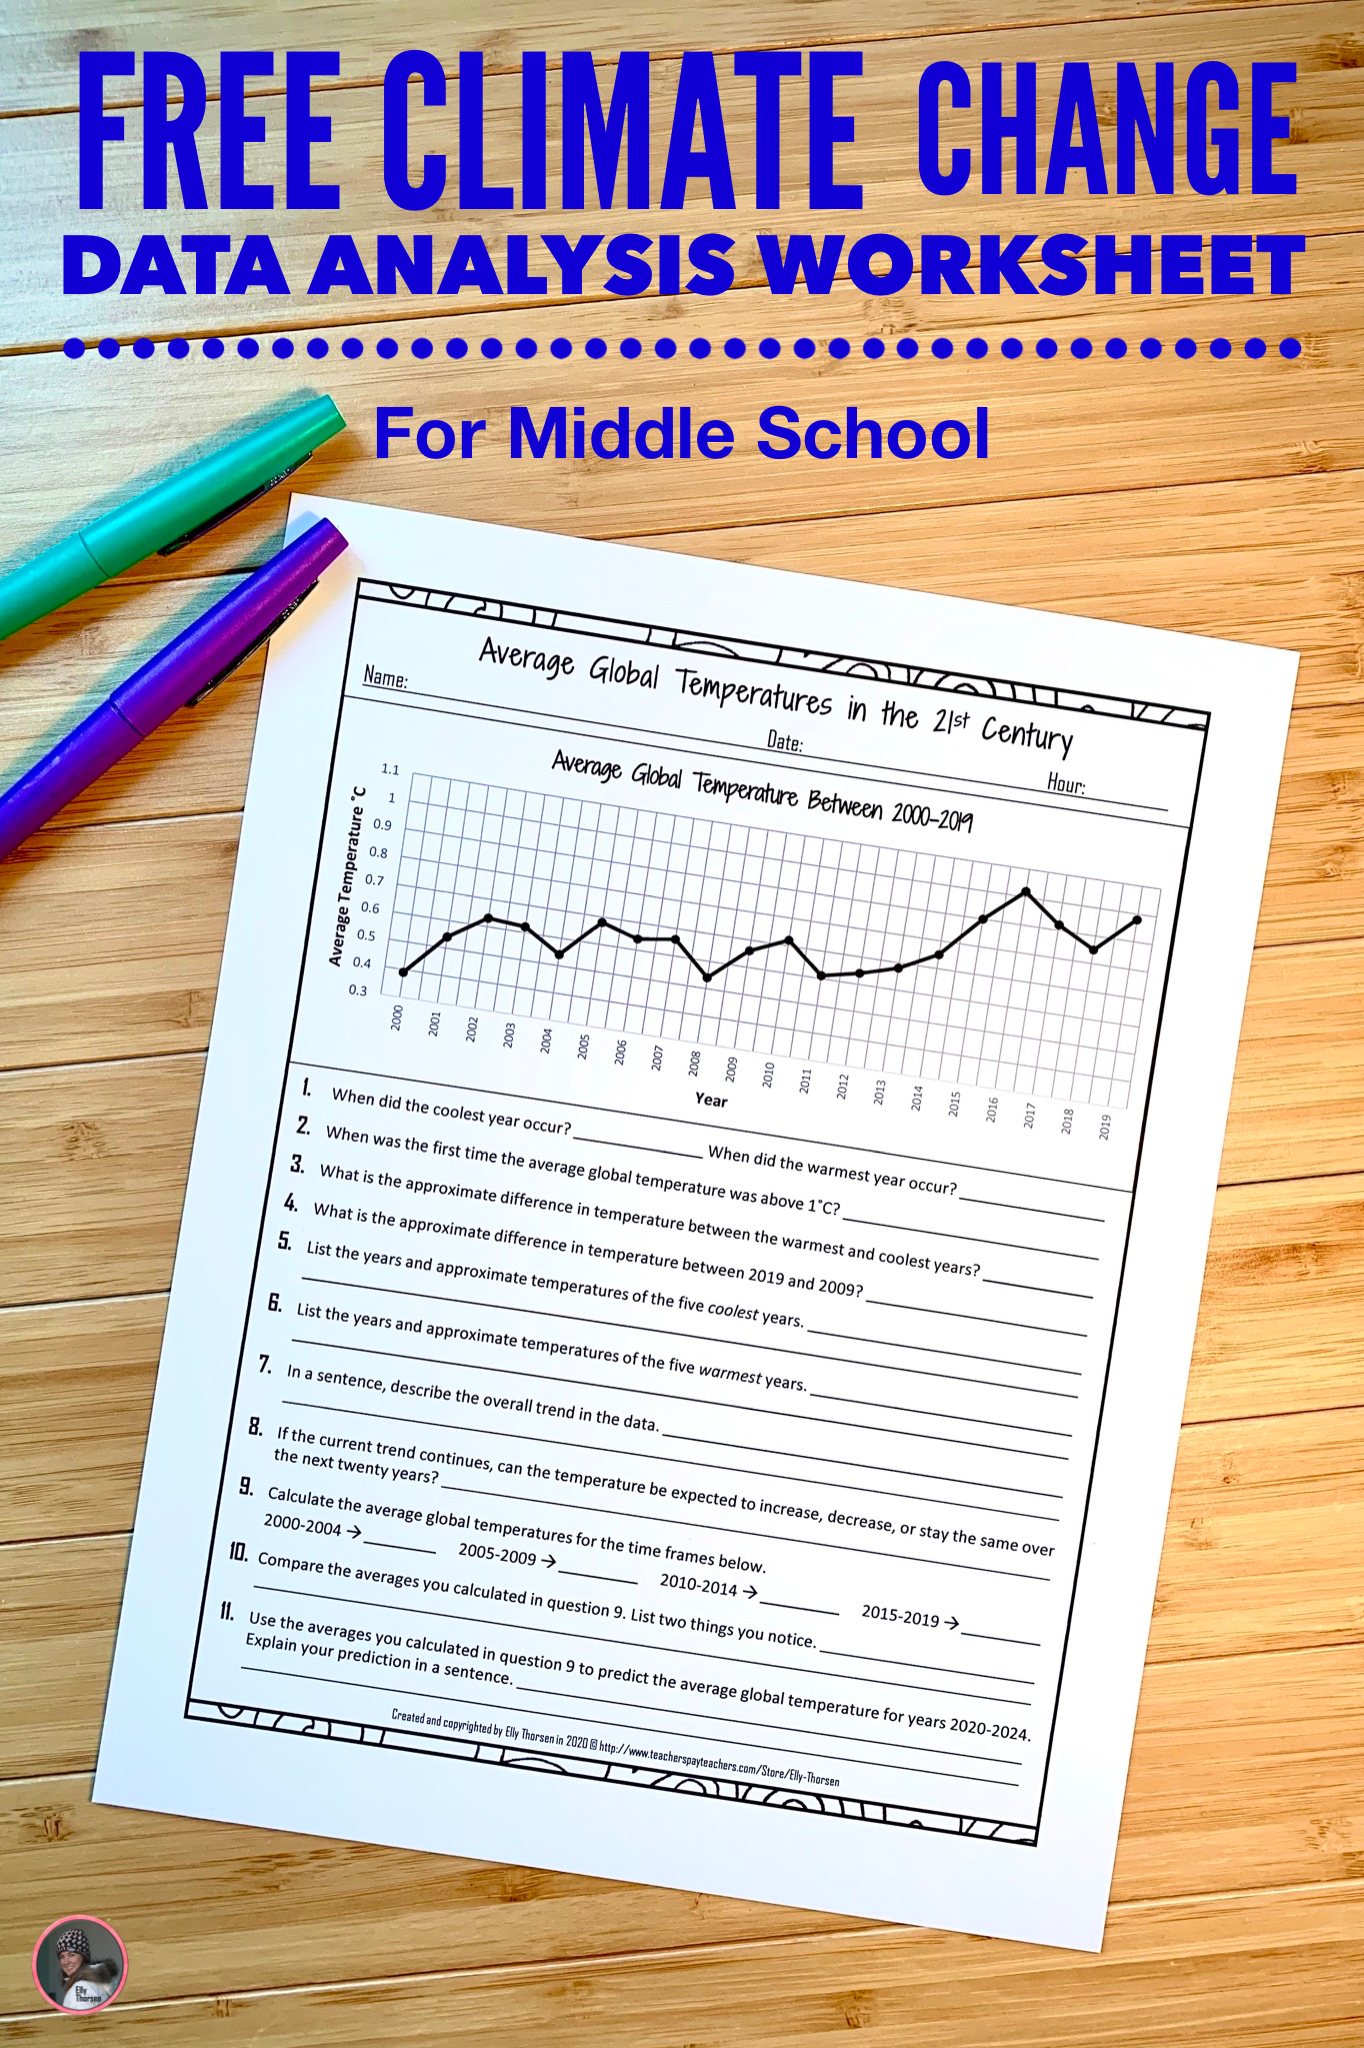 Free Analyzing Data Worksheet With Line Graphs About Climate Change For M Middle School Science Resources Scientific Method Middle School Middle School Science [ 2048 x 1364 Pixel ]